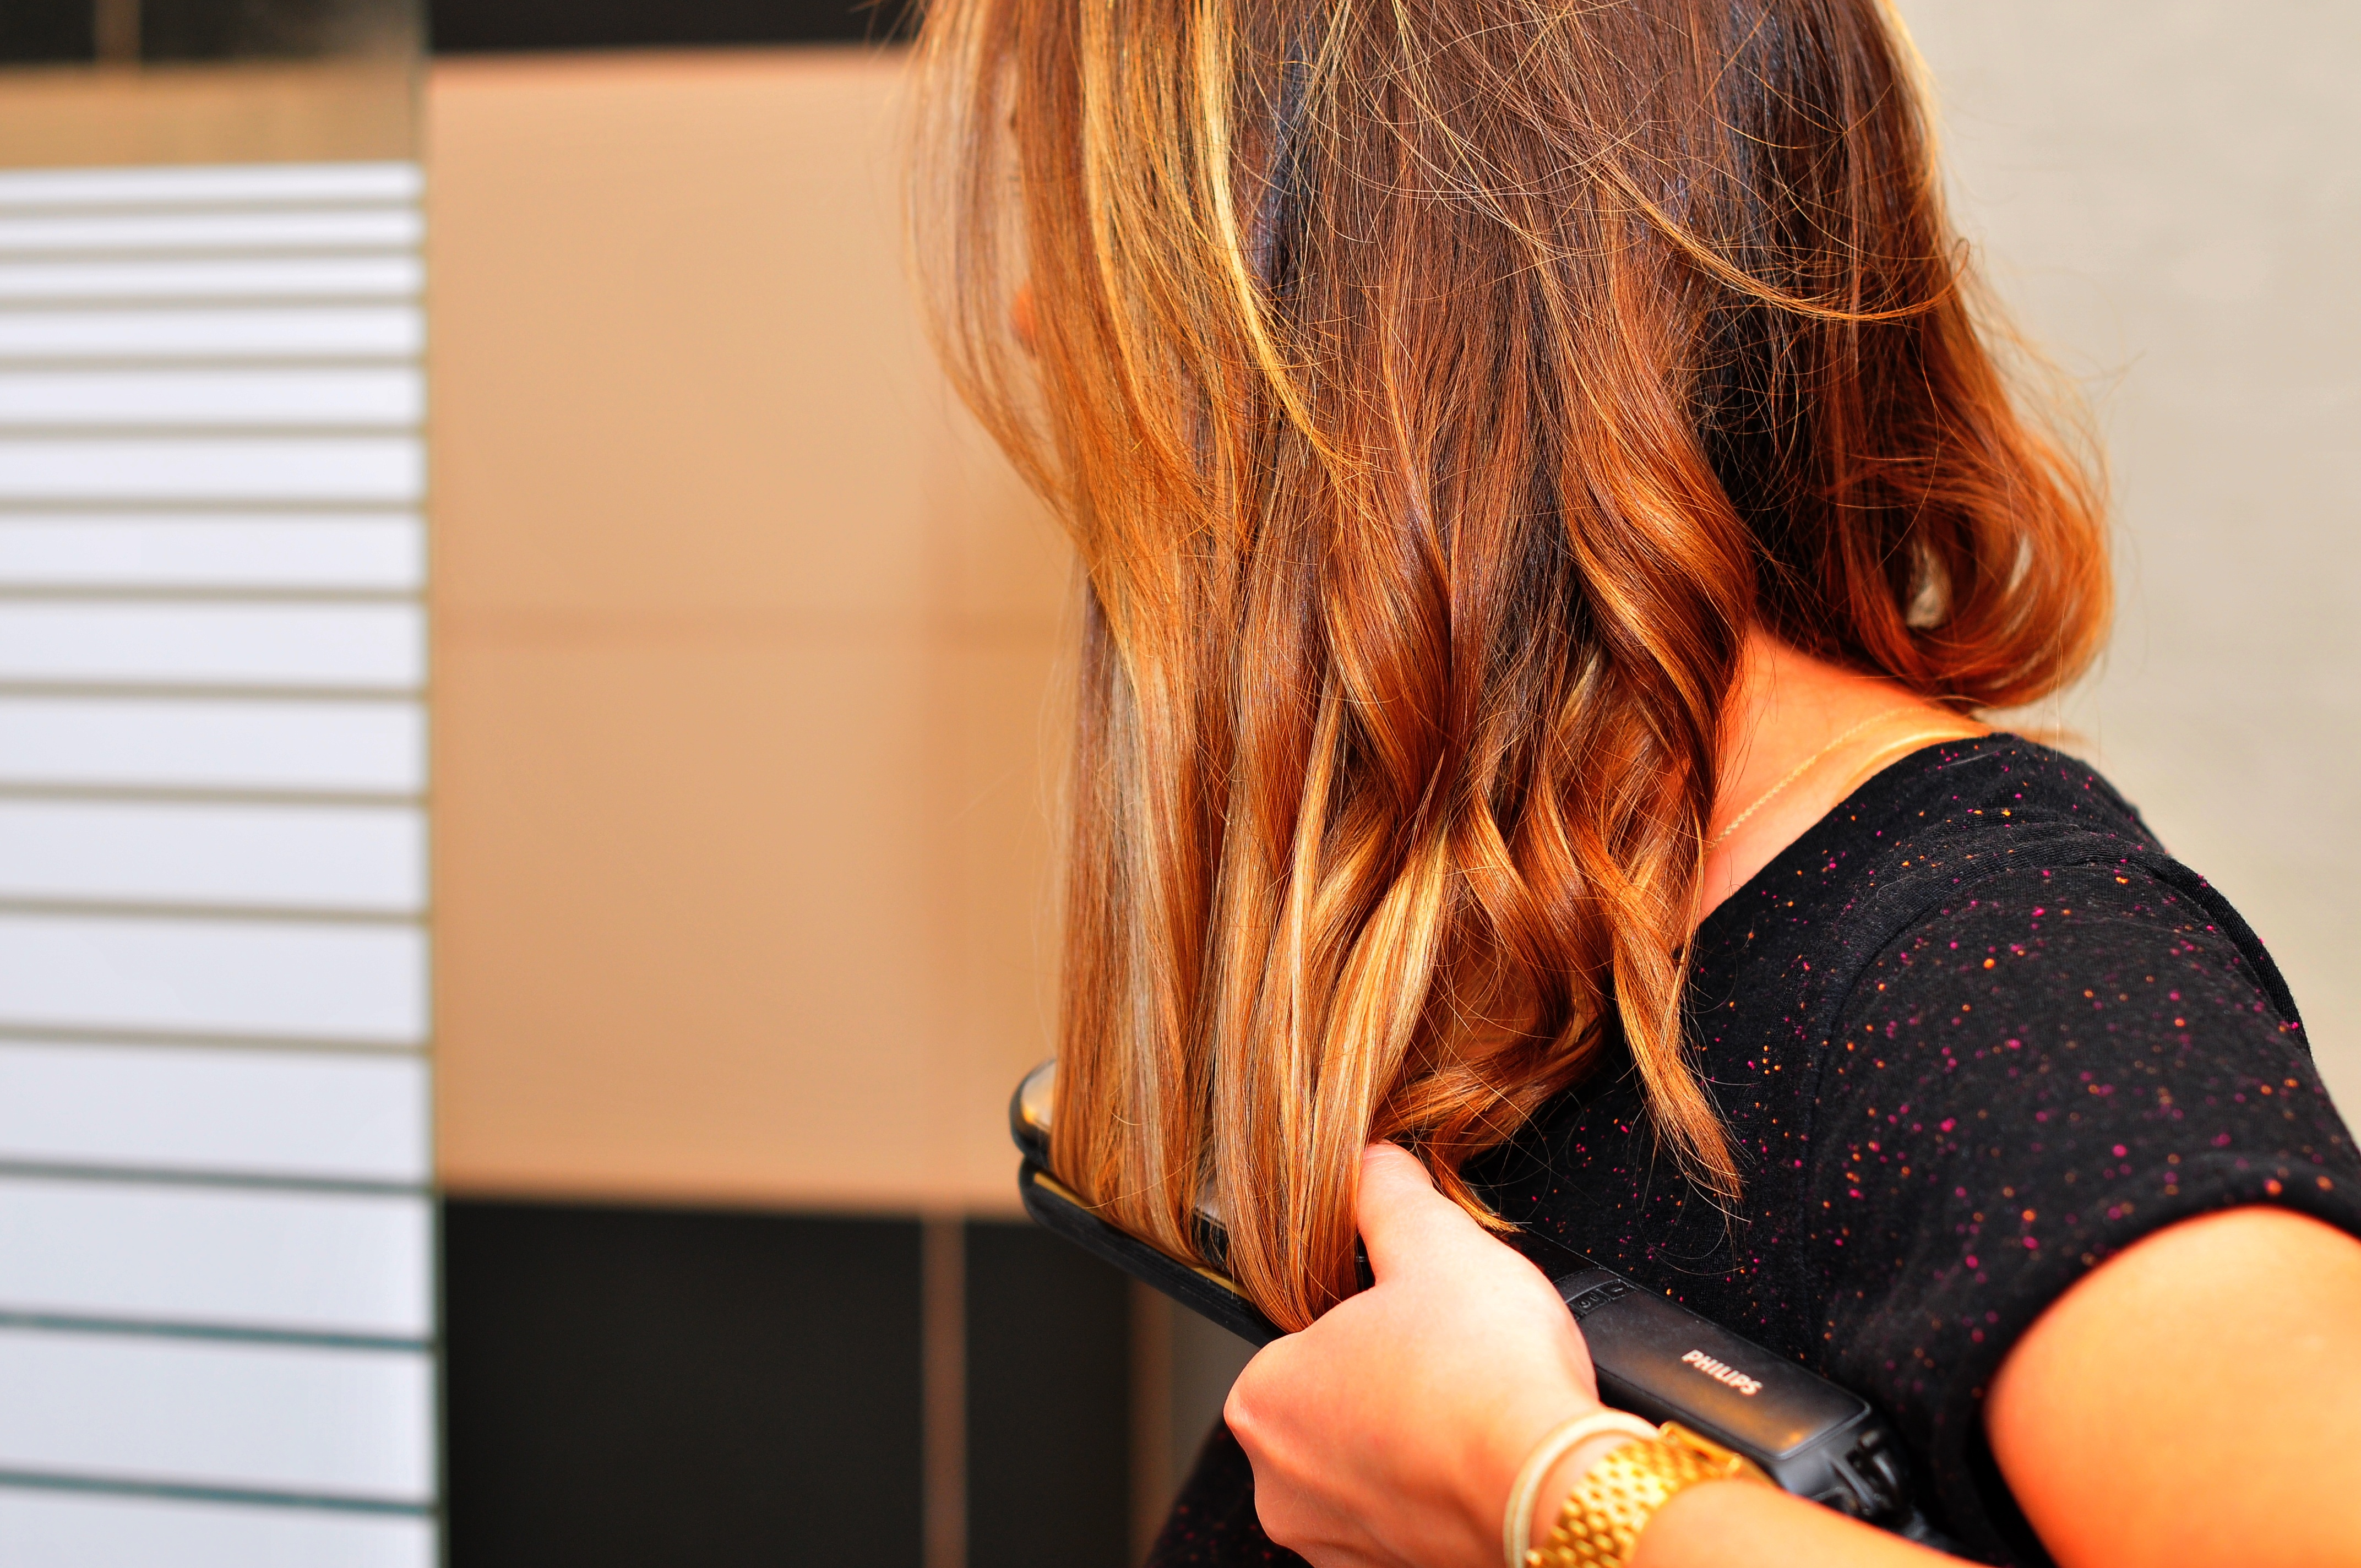 Ensure your curling iron or other small appliance doesn't get left on all day.